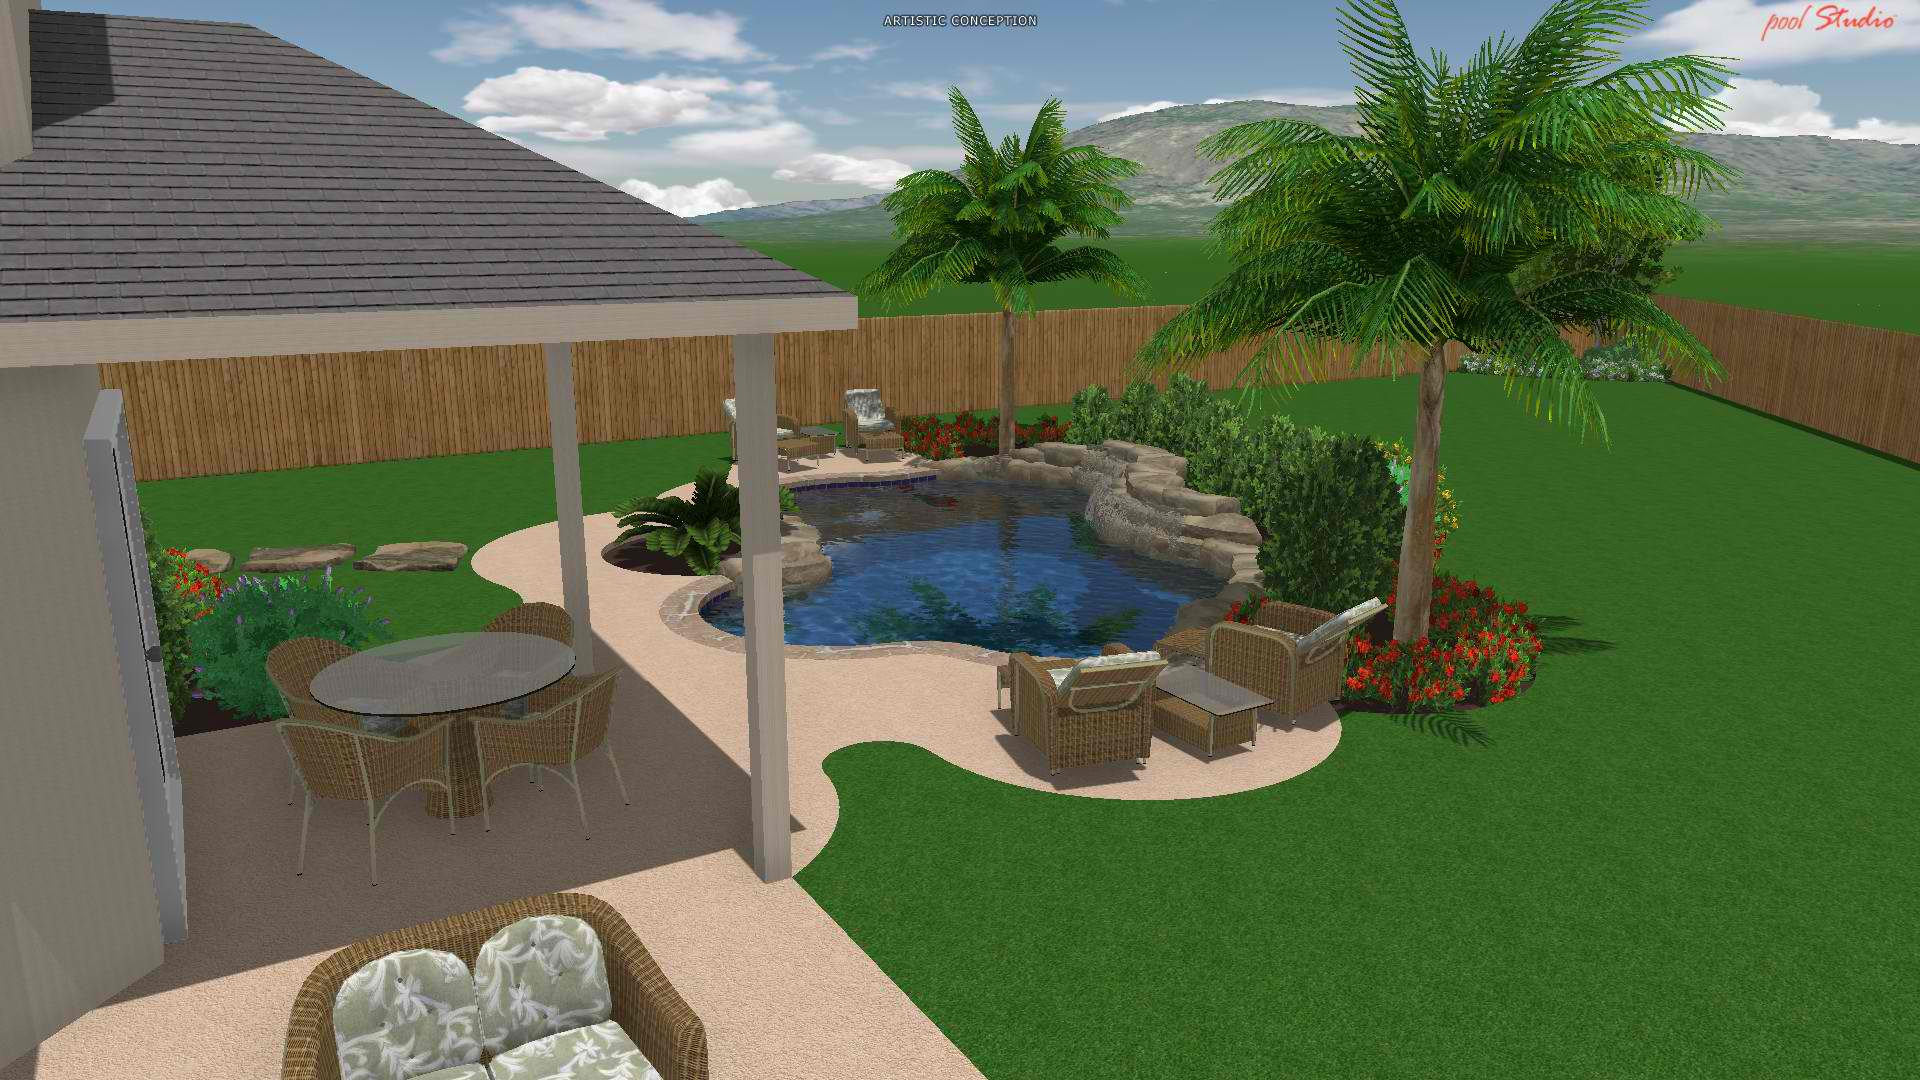 Pool Builders Austin Reliant Pools Austin 39 S Custom Pool Builder Pool Builders Austin Tx